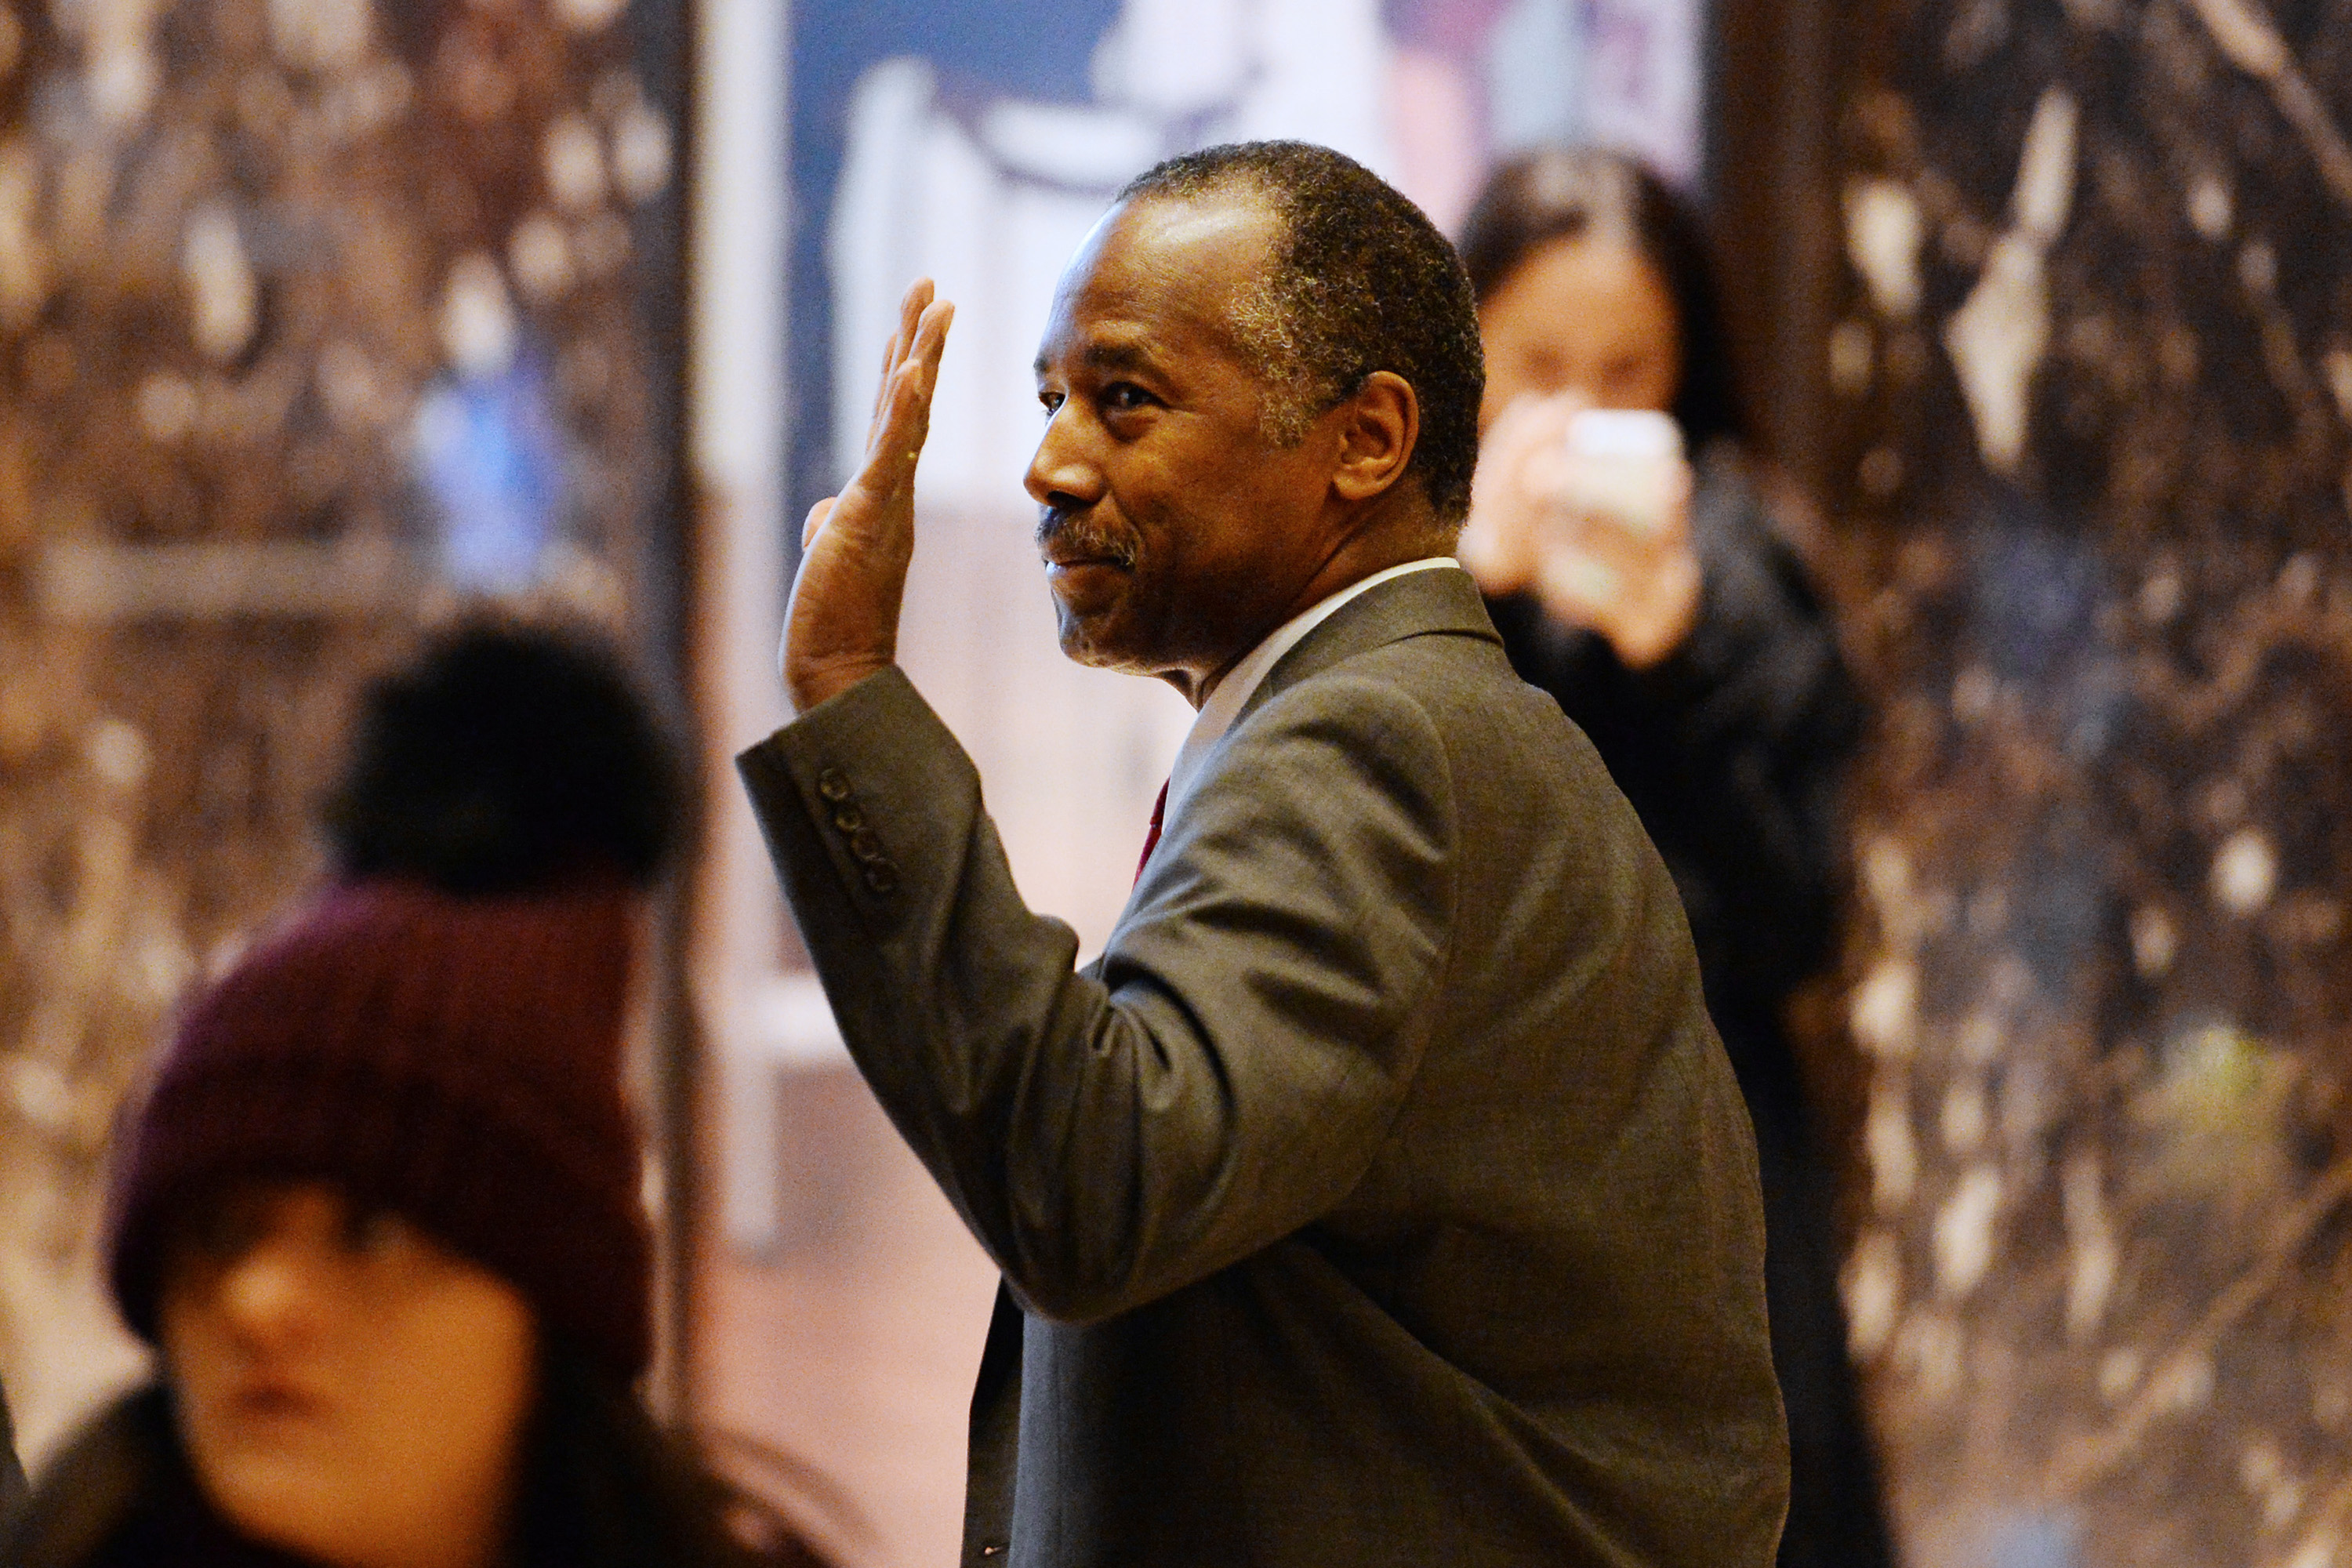 Ben Carson waves to bystanders as he walks through the lobby of the Trump Tower in New York City on Nov. 22, 2016. (Anthony Behar/CNP/Zuma Press/TNS)